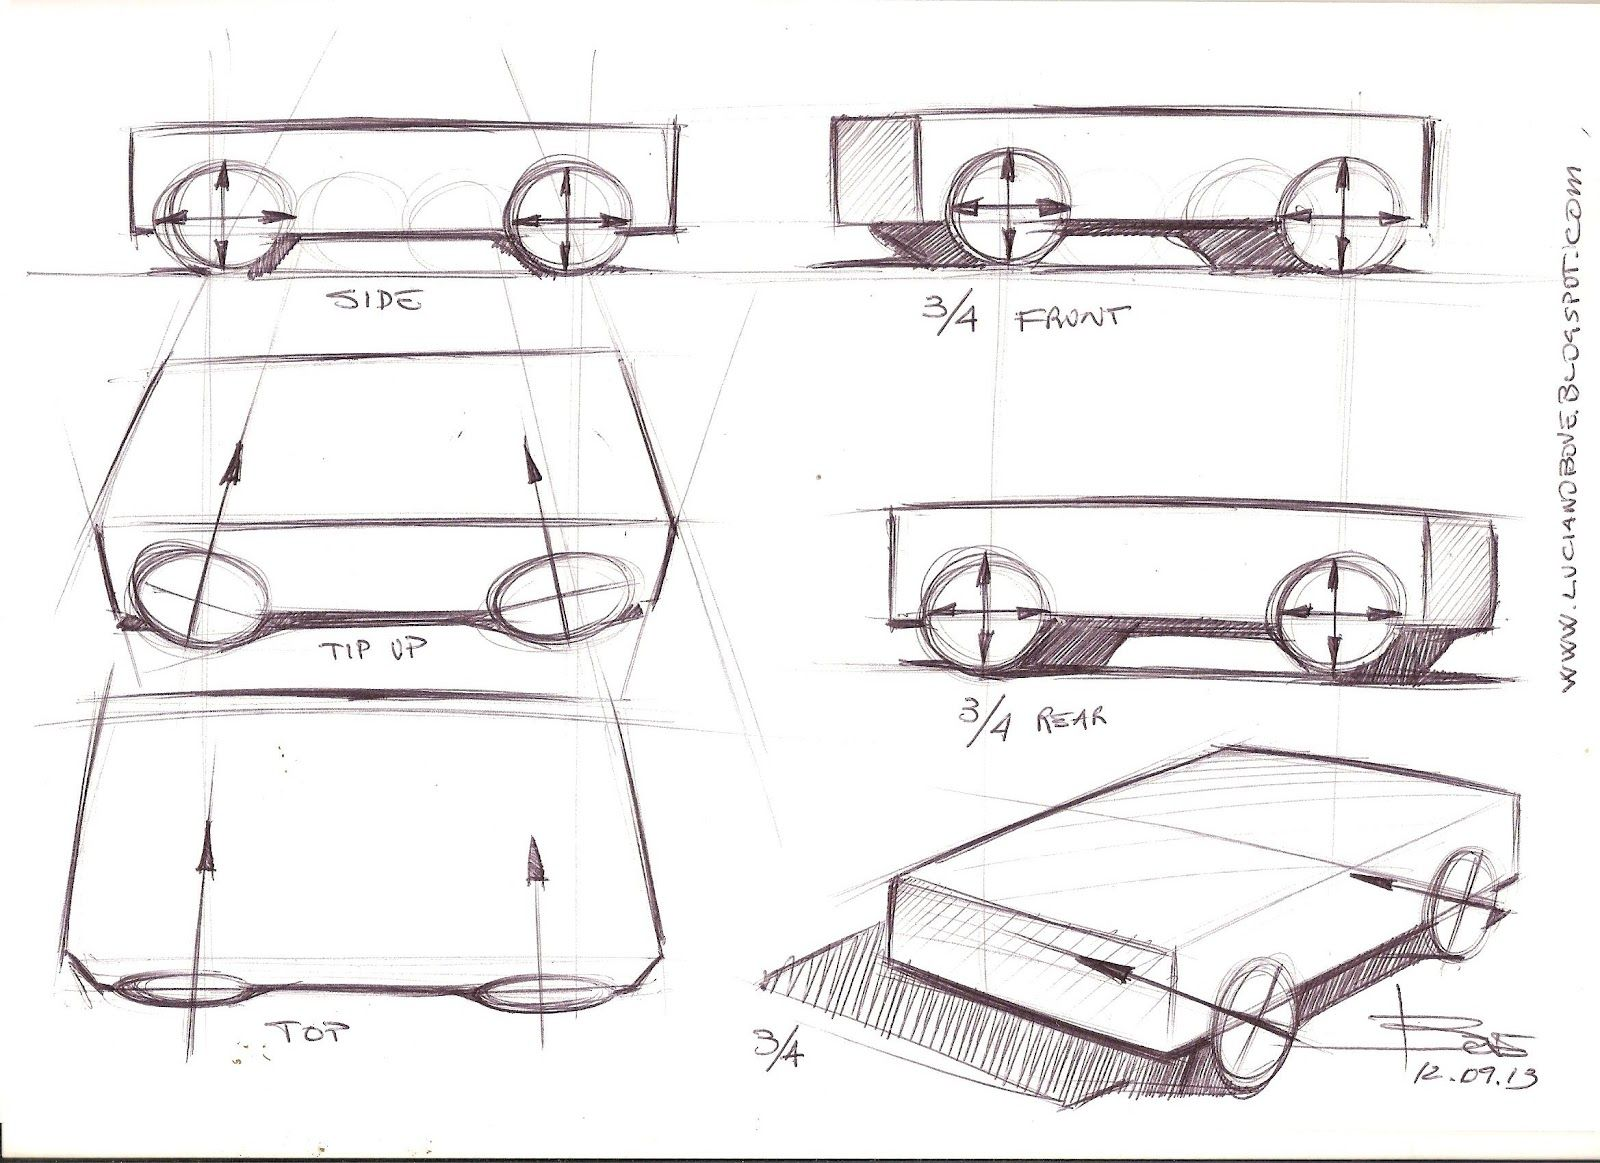 Car drawing tips by Luciano Bove | Car Design Education Tips ...